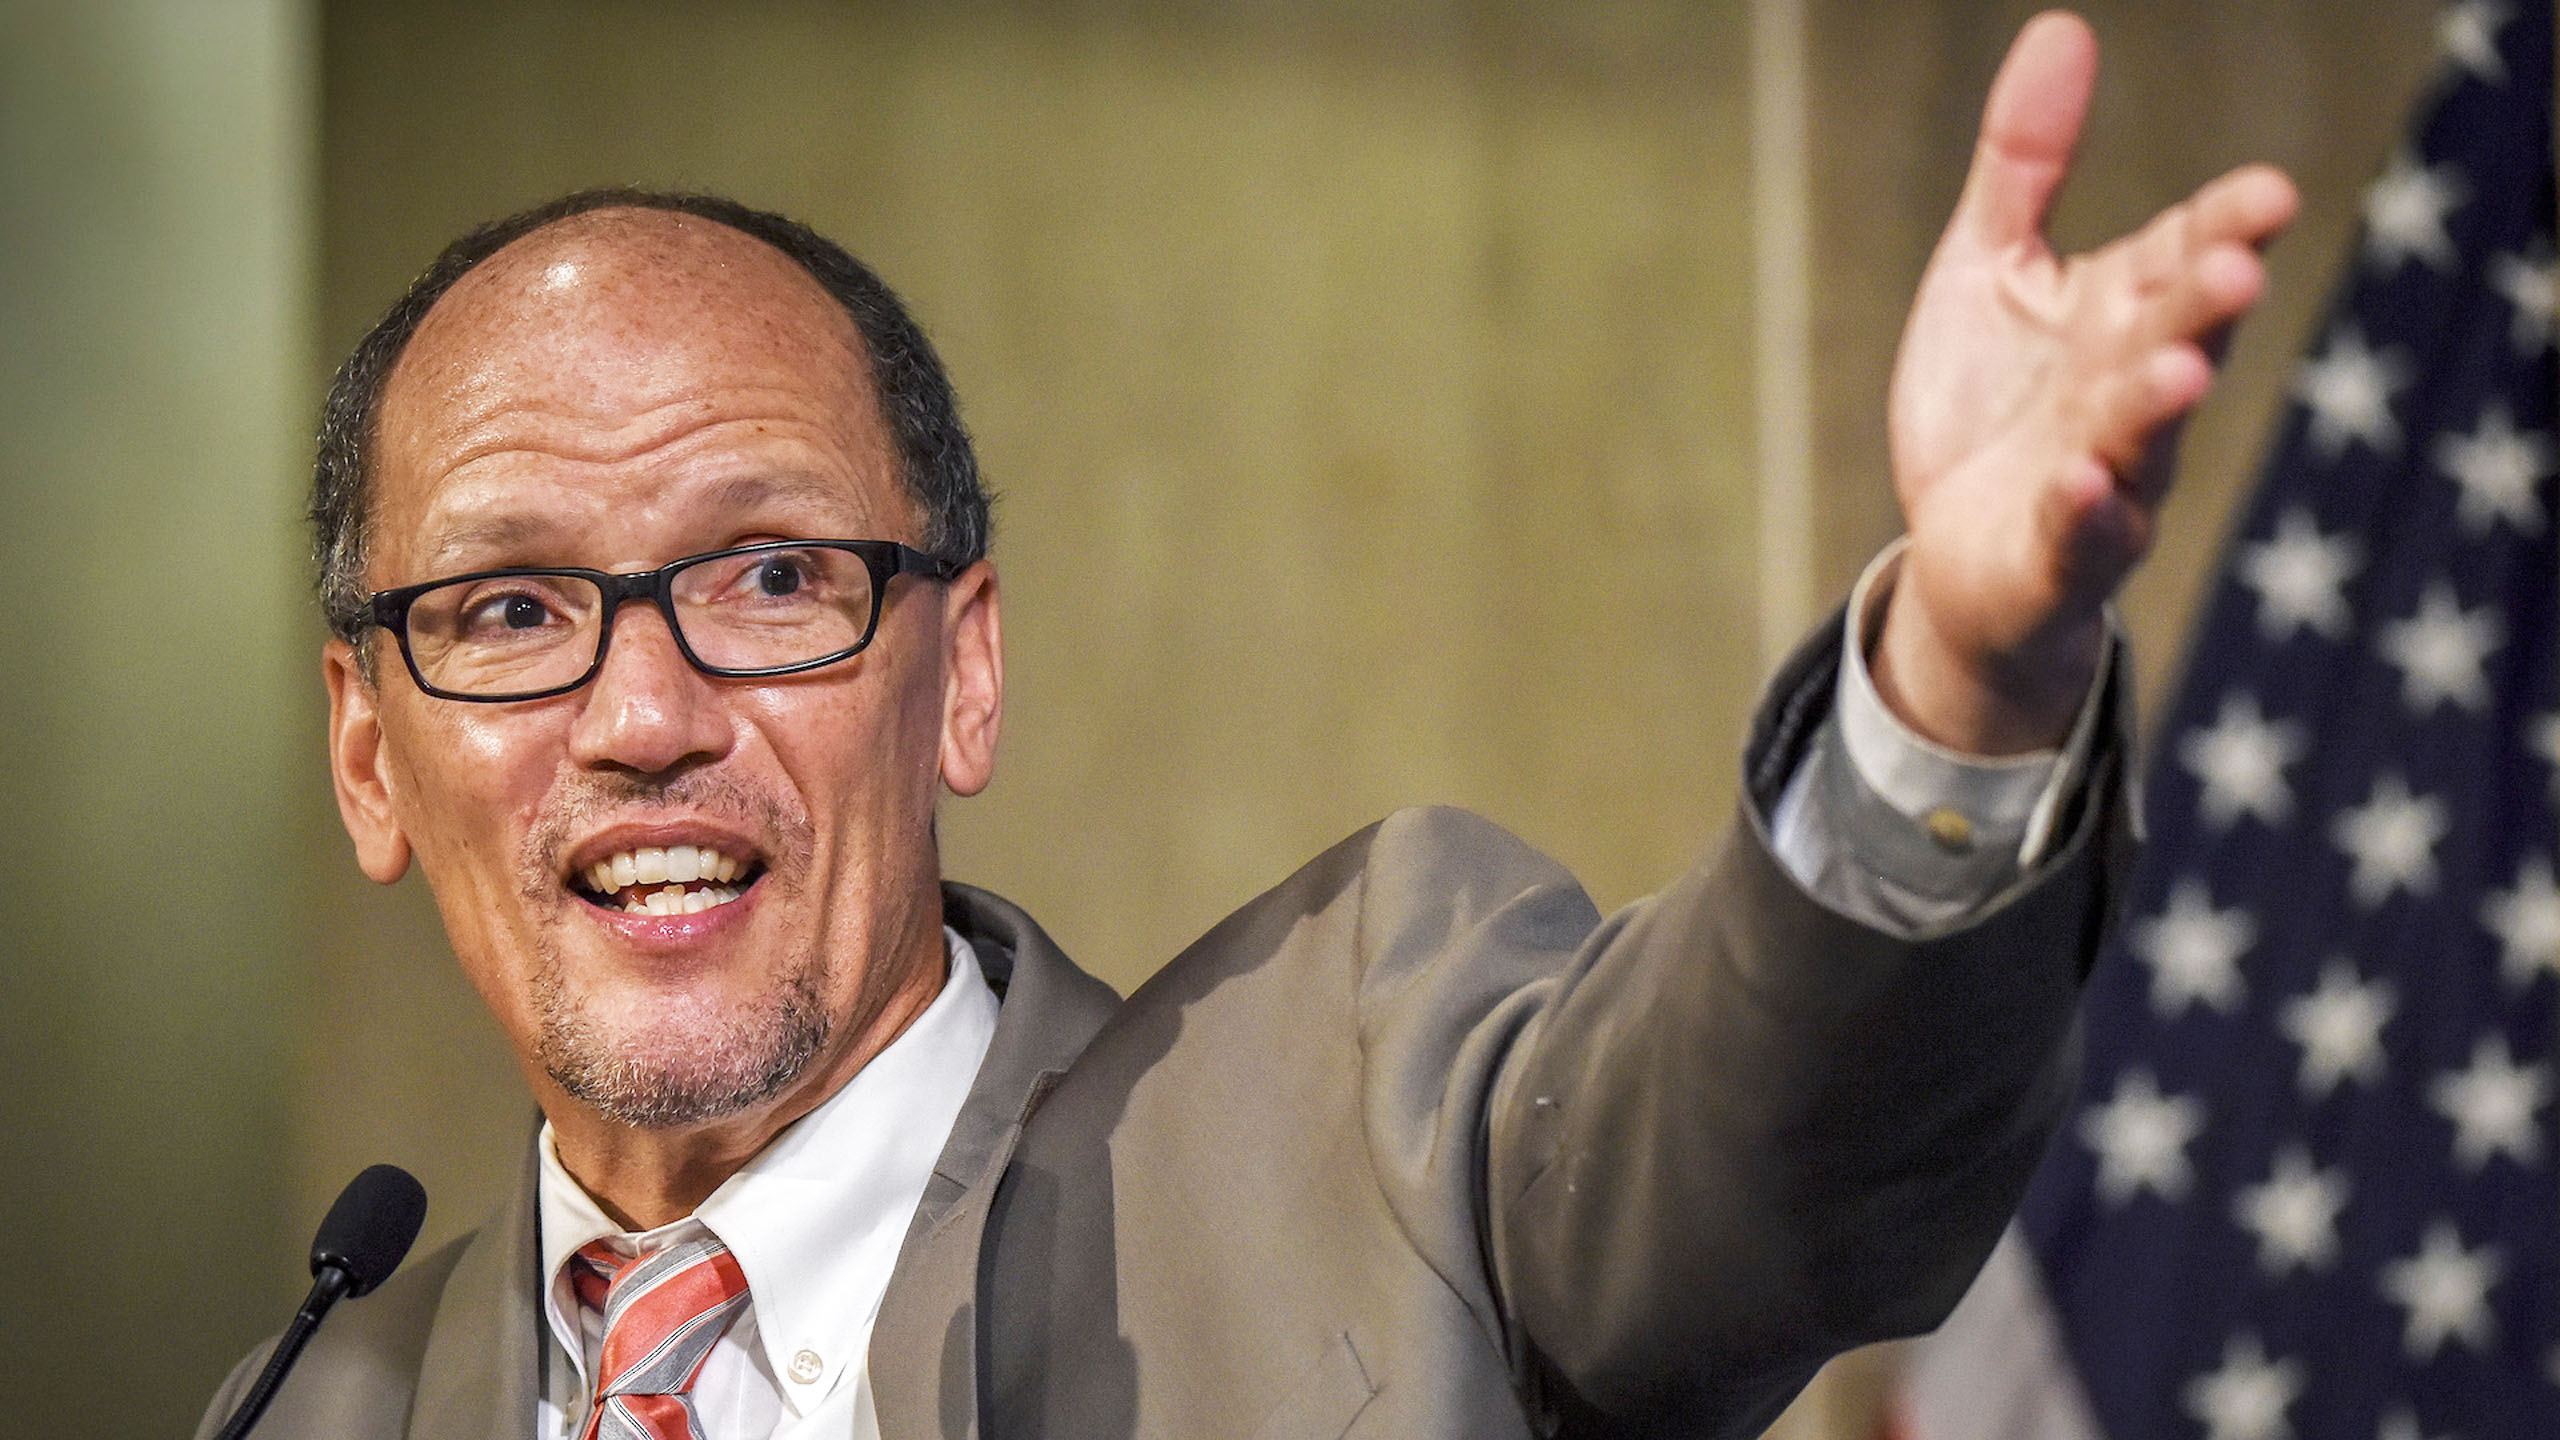 Tom Perez addresses a women's summit at the Department of Labor  in Washington, DC on June 15, 2016.